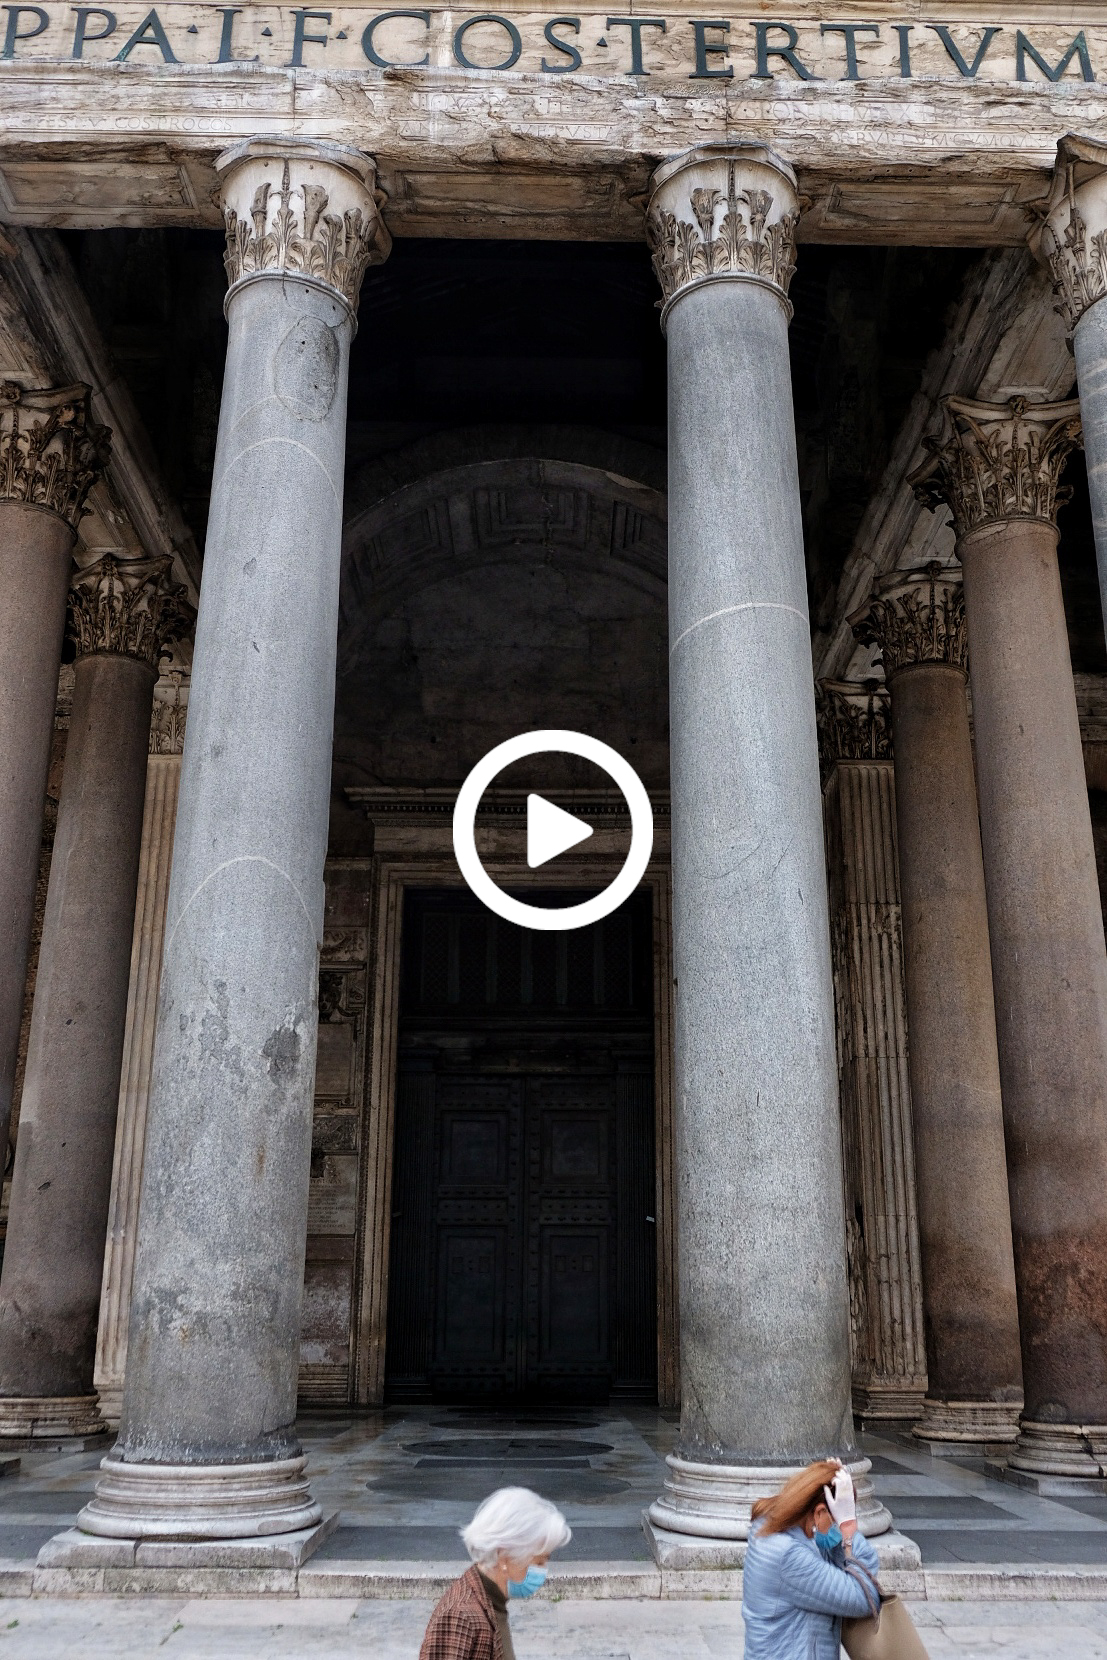 The Pantheon: a masterpiece of engineering